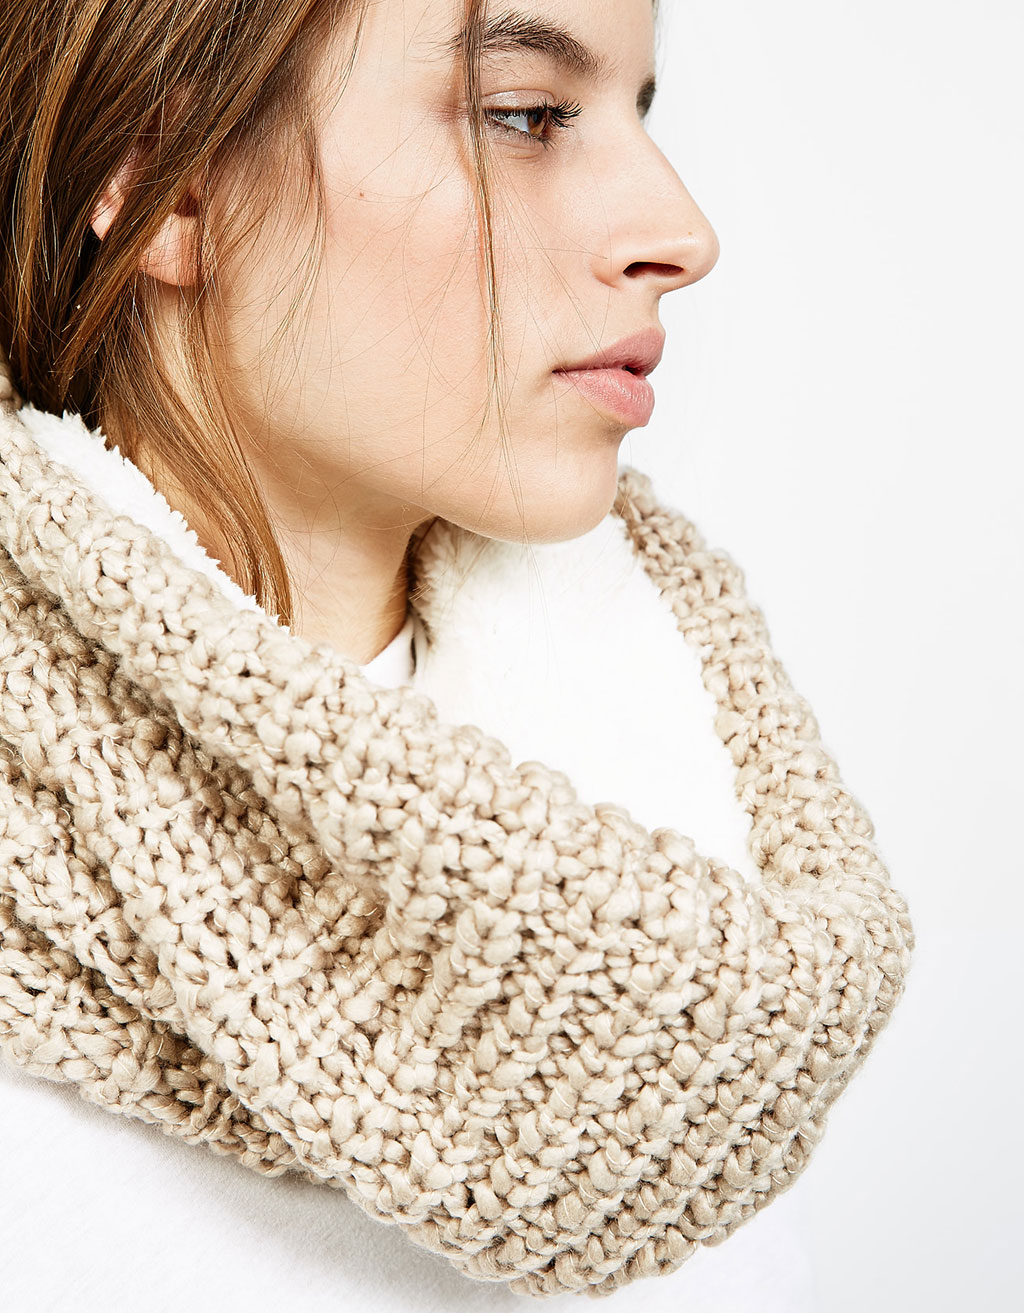 Cuello snood borreguito